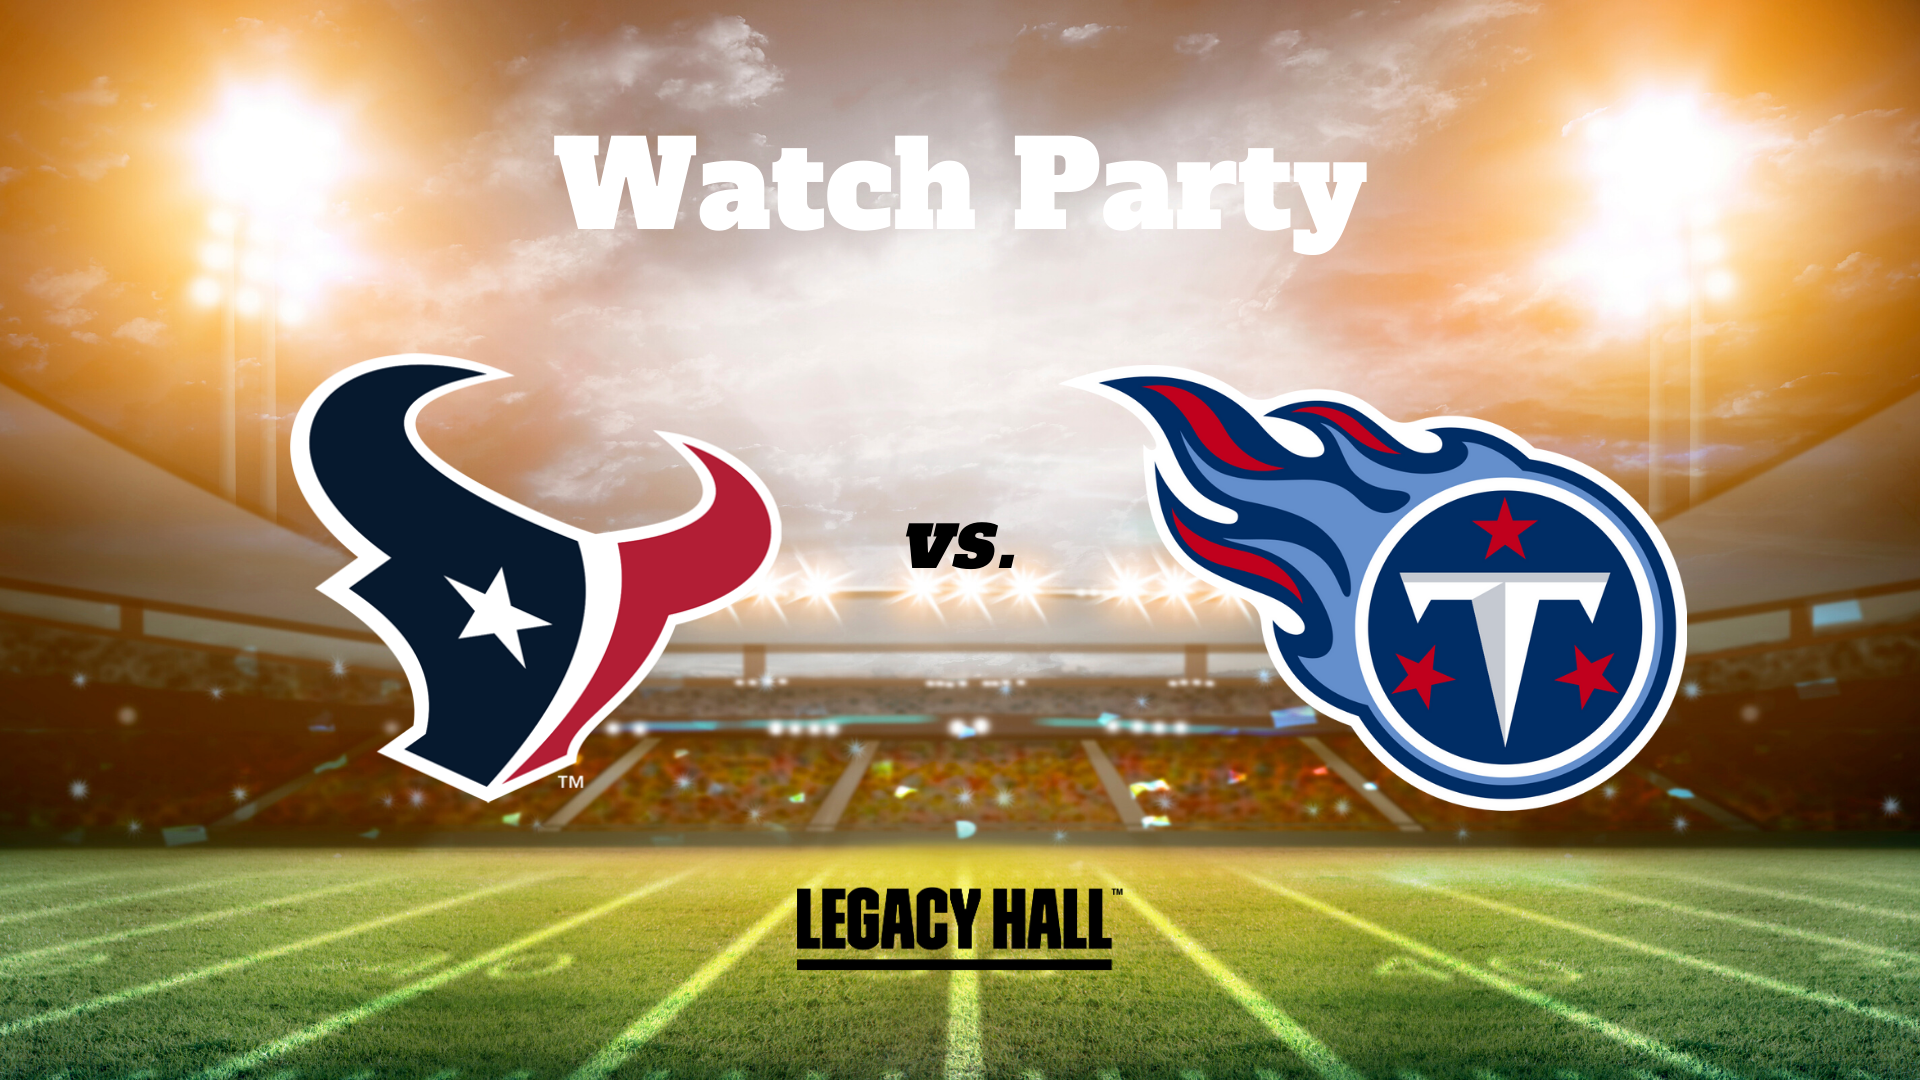 Texans vs. Titans Watch Party